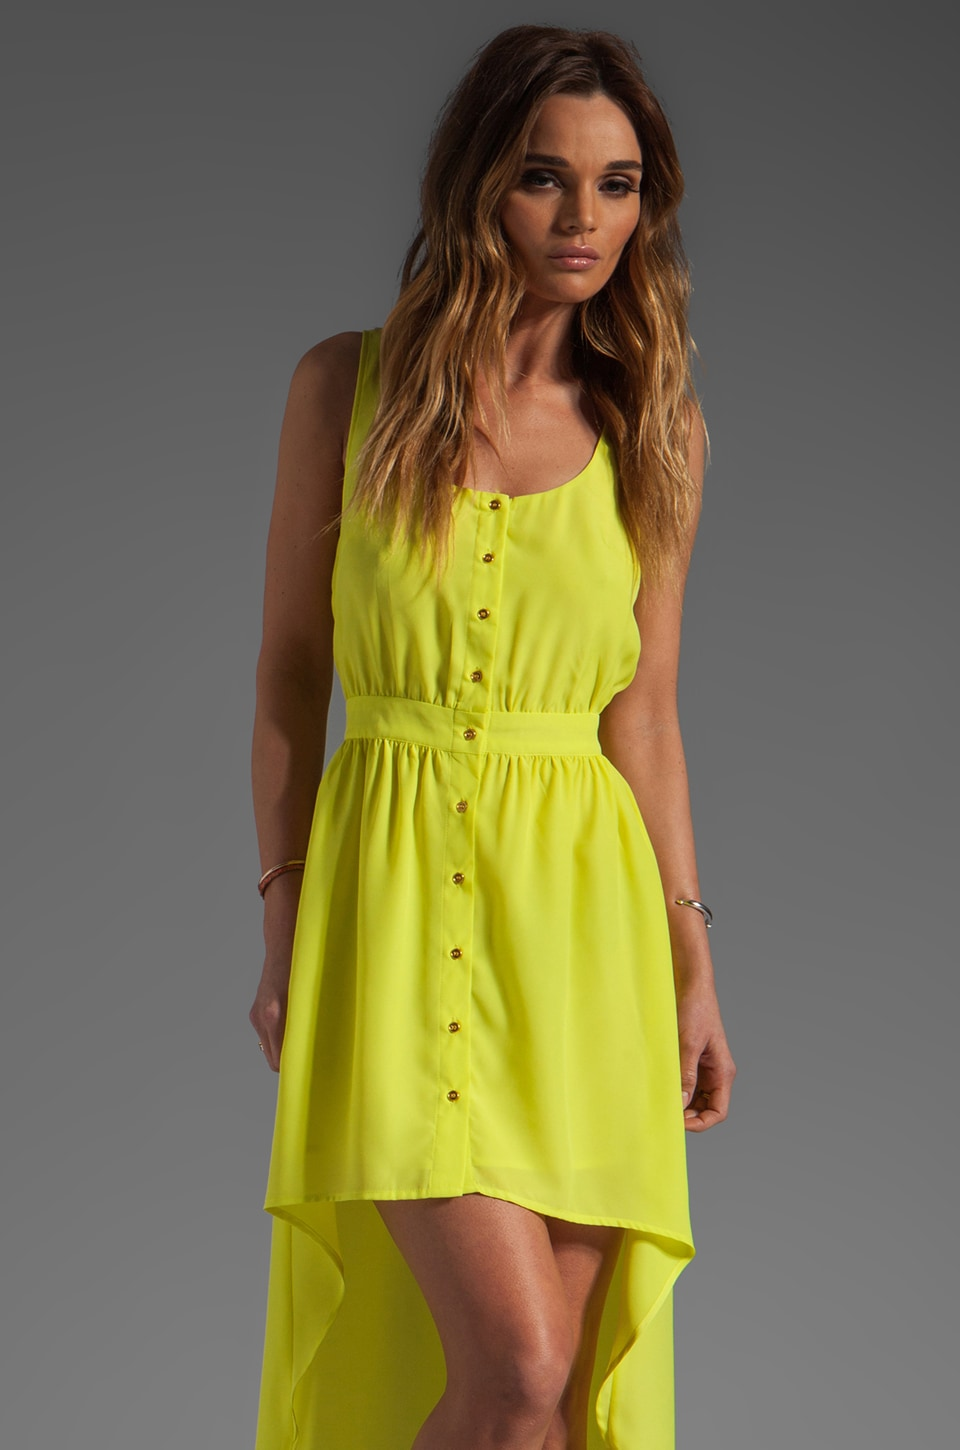 Central Park West Beaumont Hi-Low Tank Dress in Chartreuse